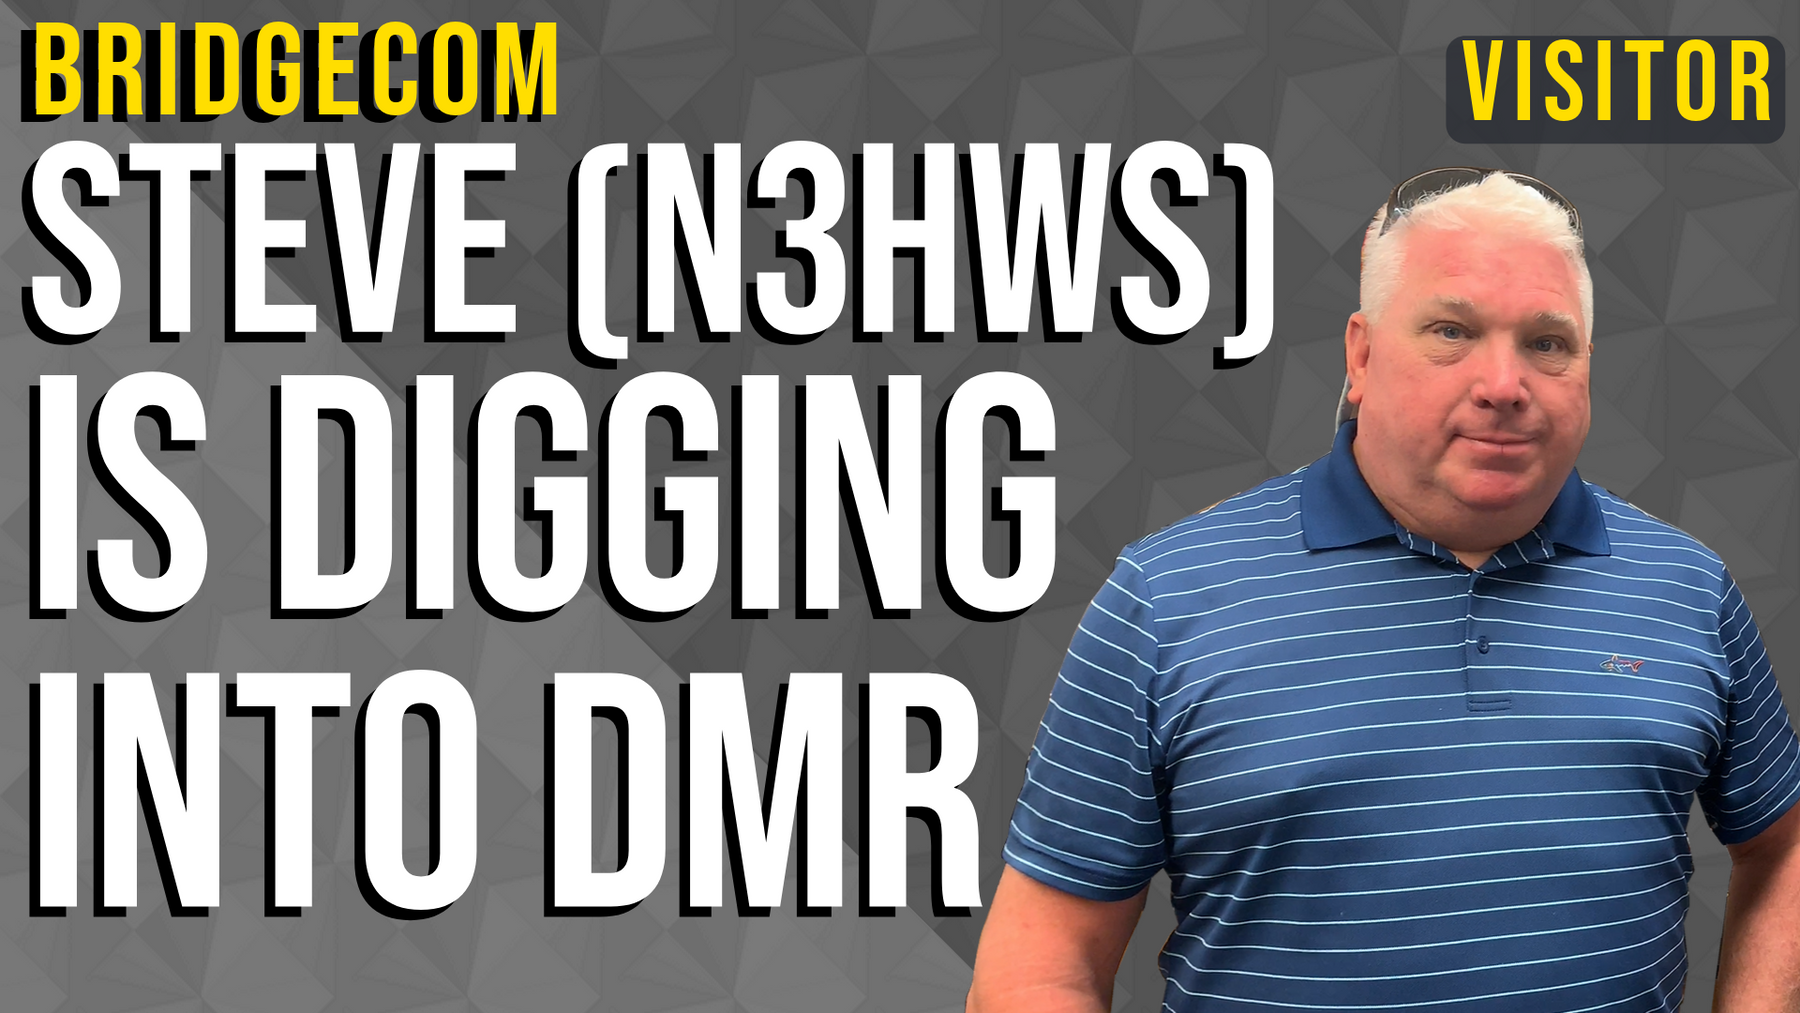 Steve (N3HWS) is Digging Into DMR